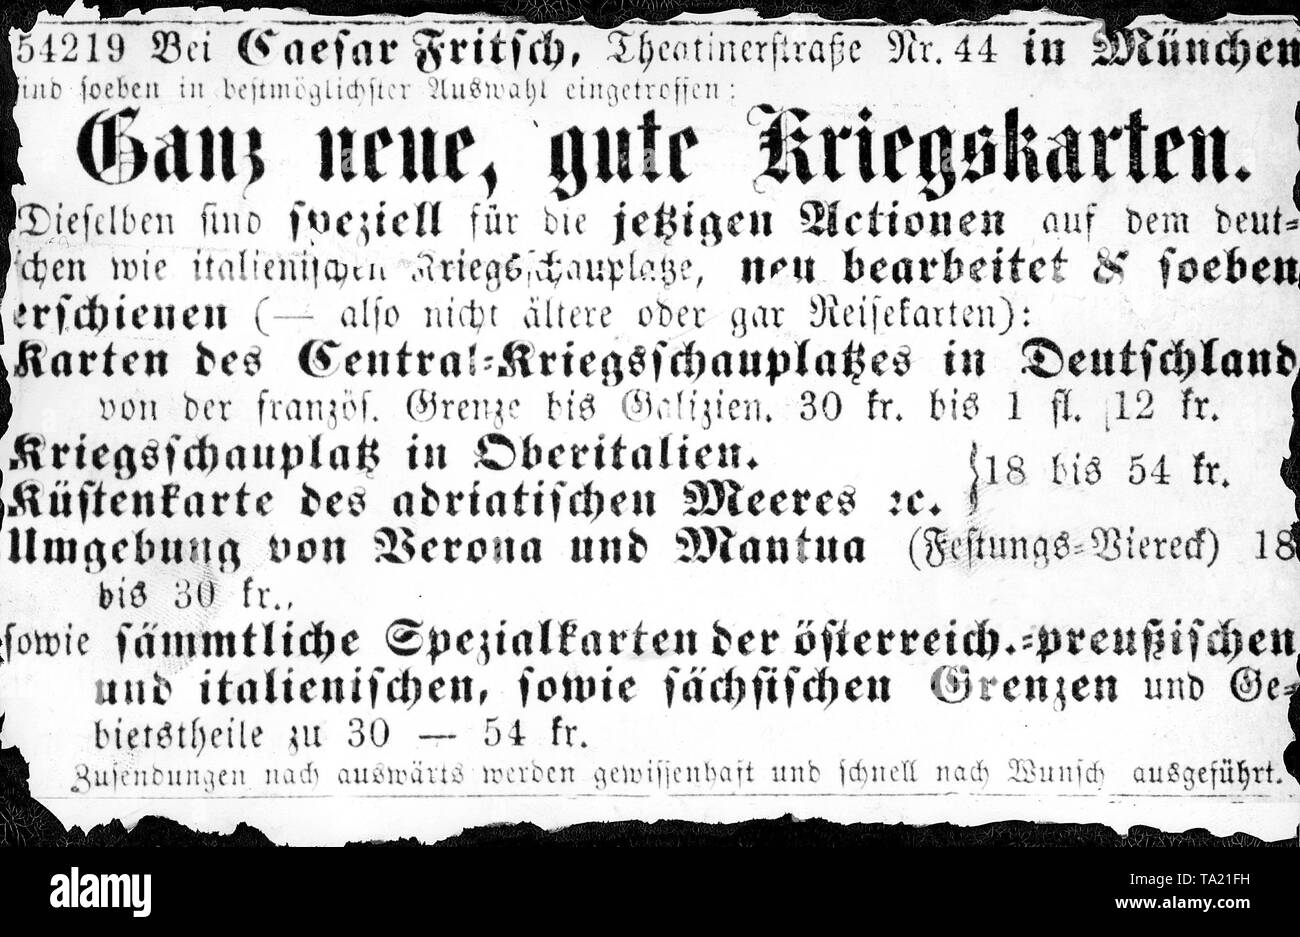 This newspaper advertisement related to the Austro-Prussian War in 1866 appeared in a Munich newspaper. - Stock Image